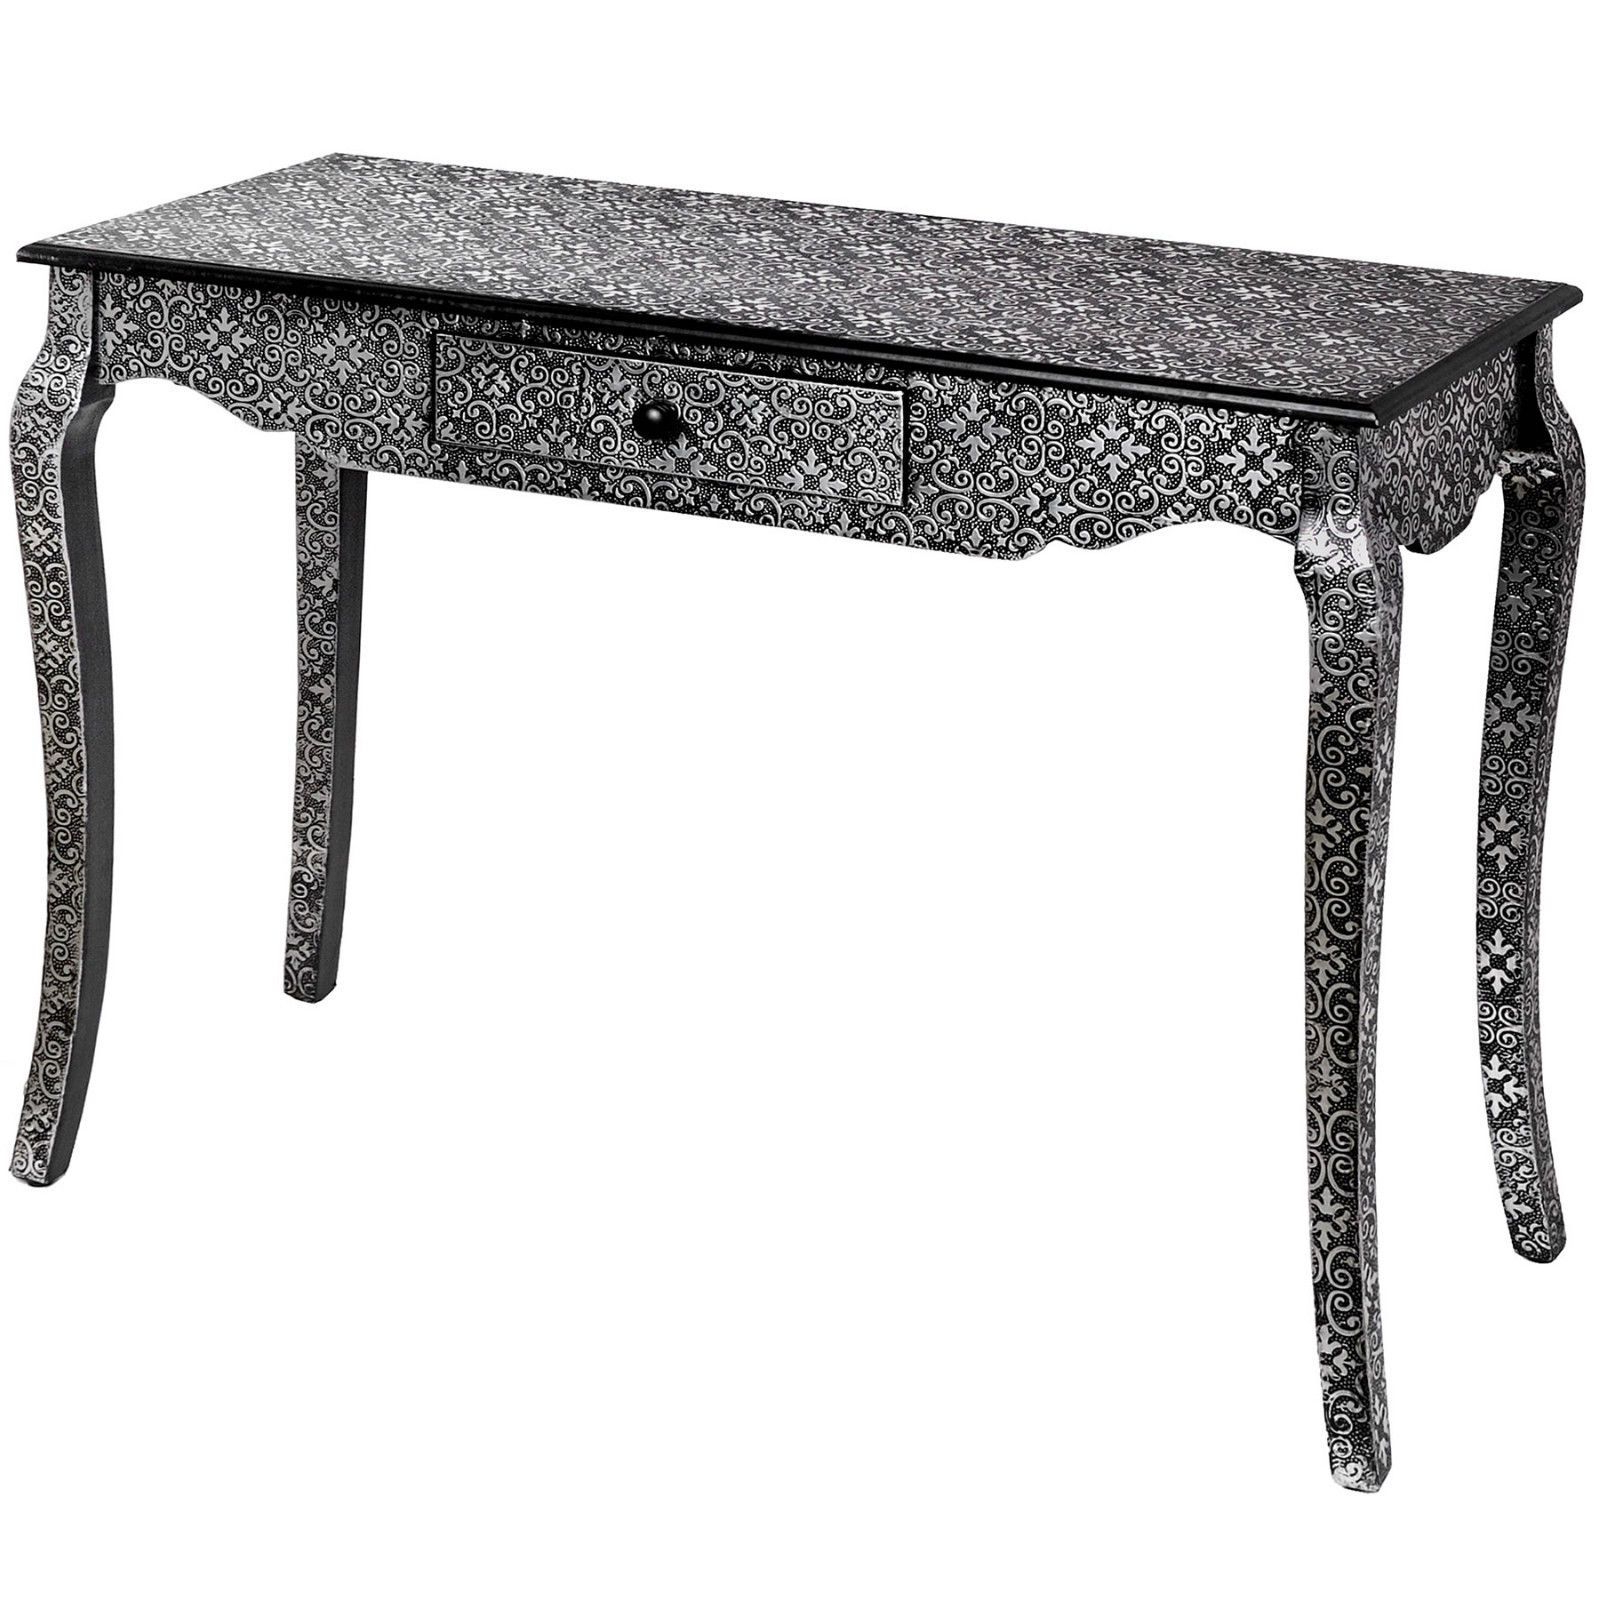 Marrakech Moroccan Style Carved Black Silver Wood Dressing Pedestal Intended For Black And White Inlay Console Tables (View 17 of 20)